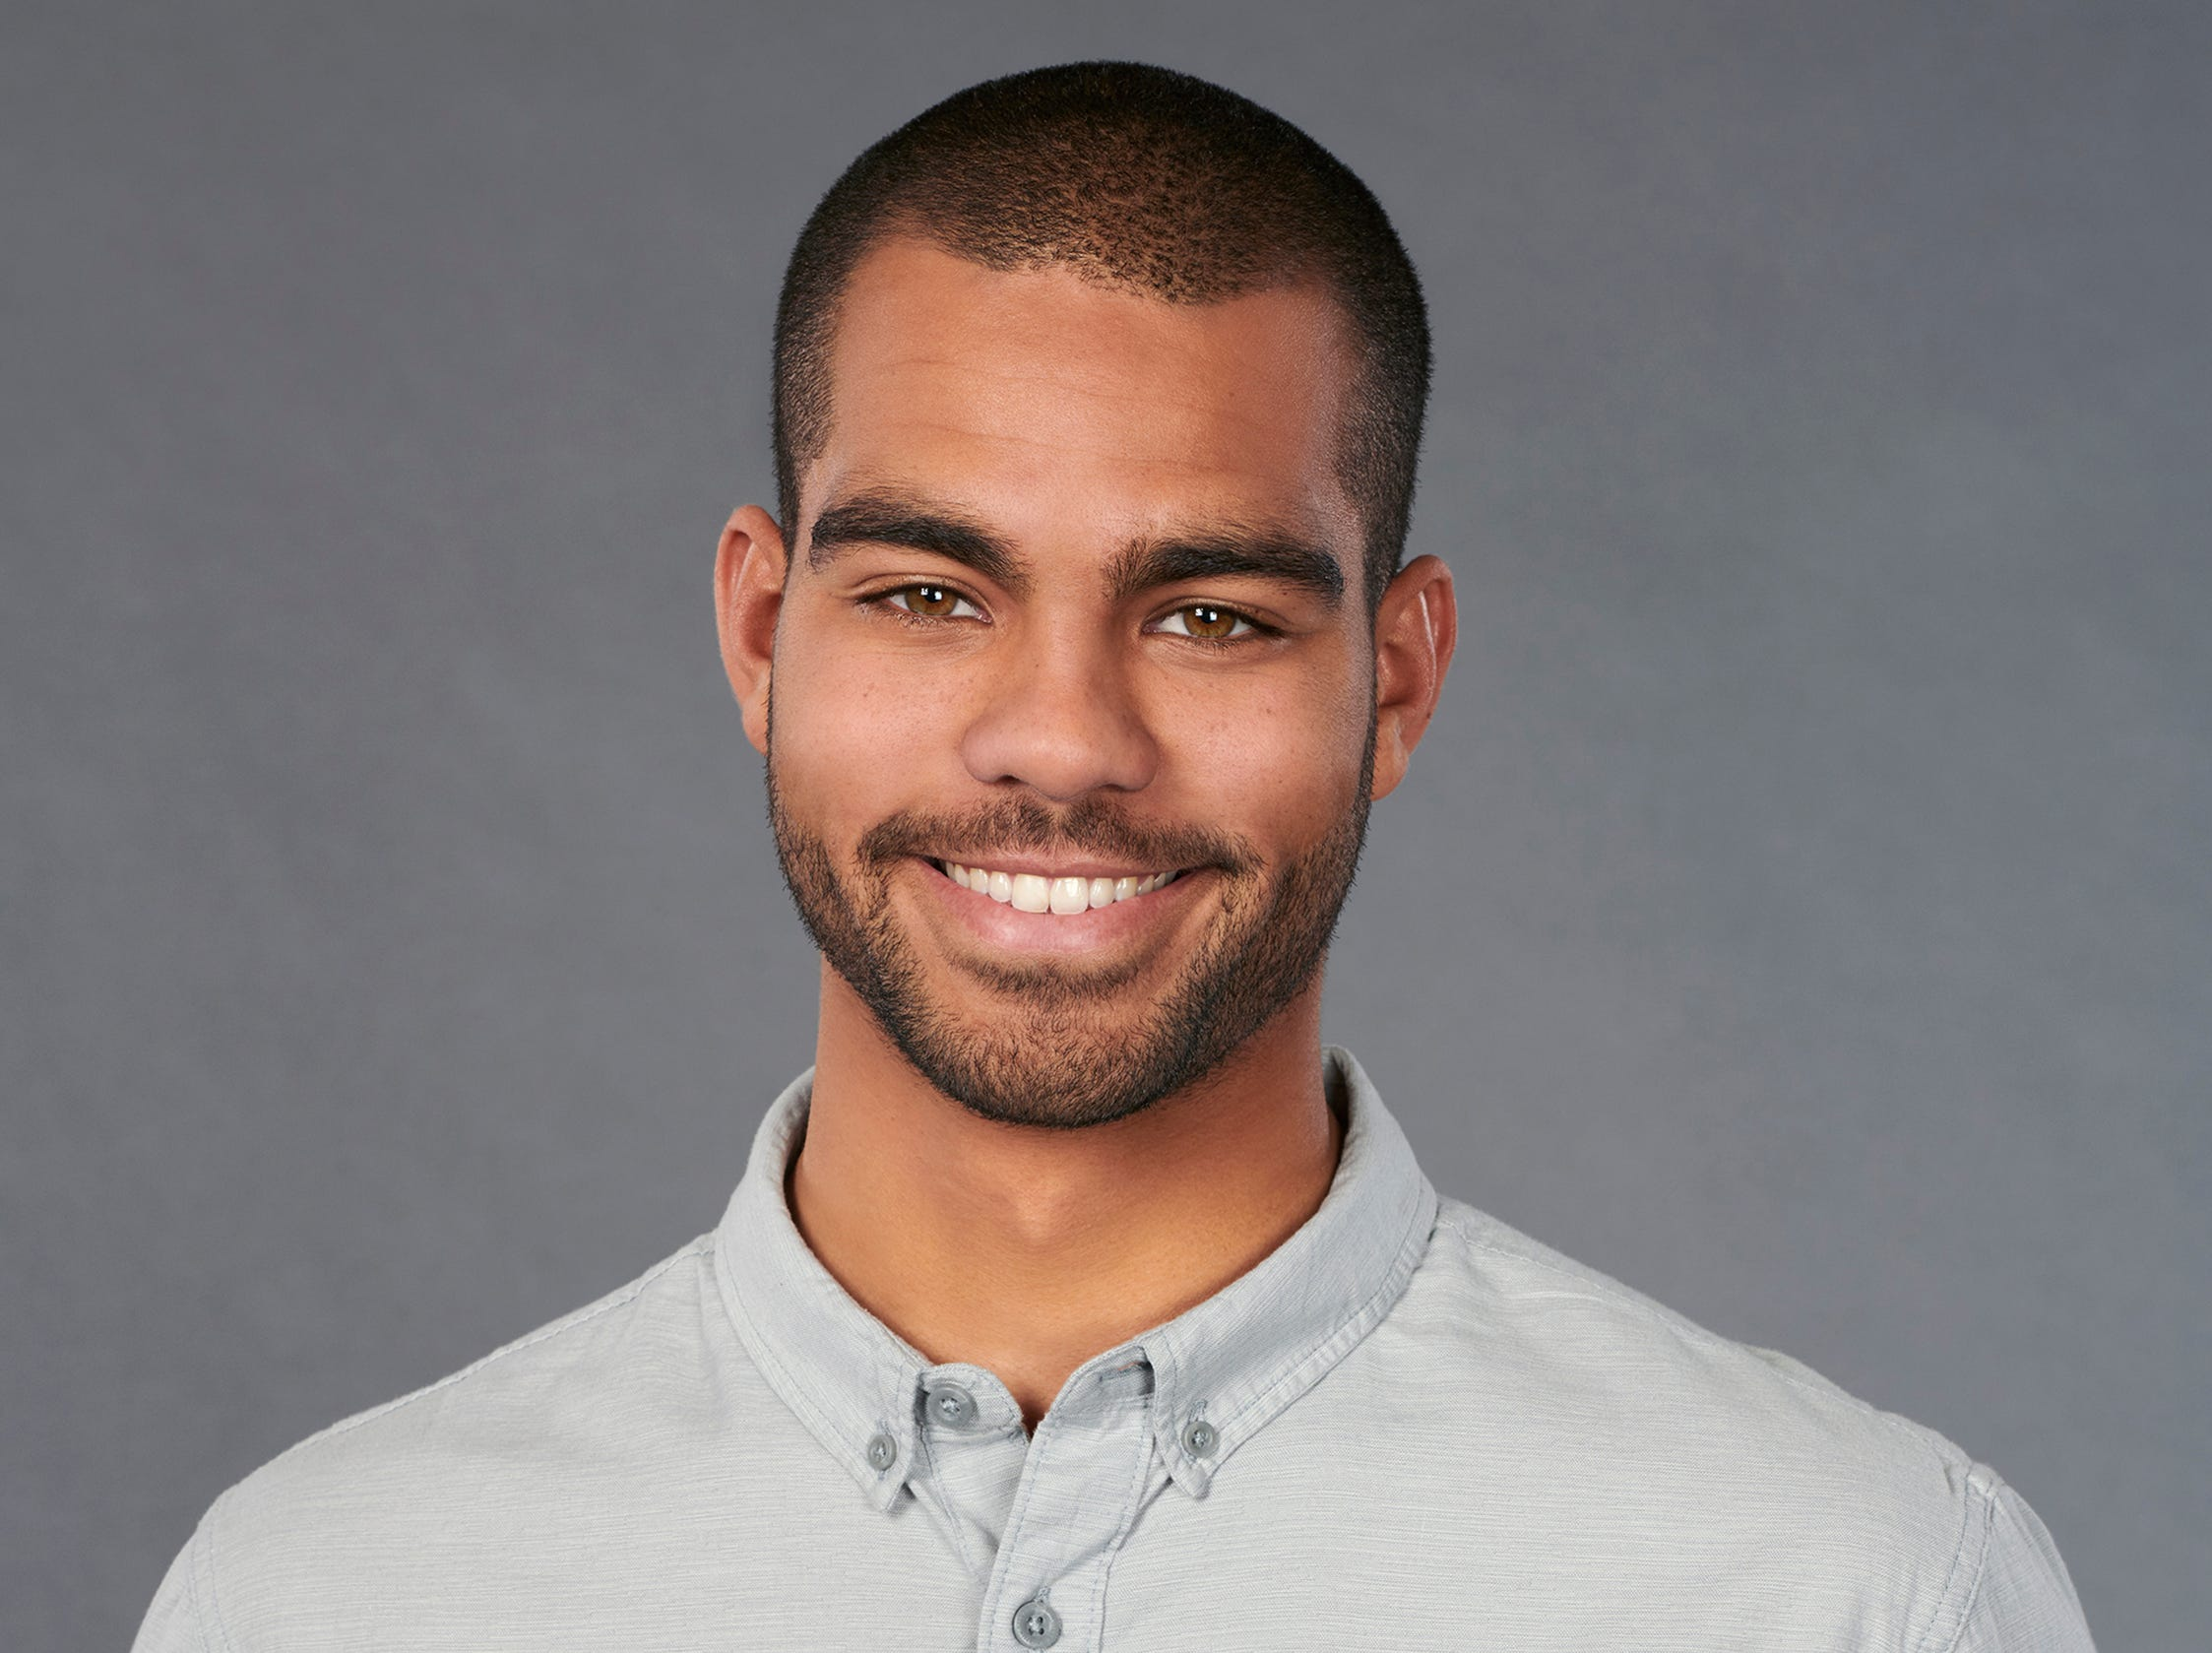 """The Bachelorette"" Season 23 contestant:  Hunter, 24, Westchester, California, pro surfer"